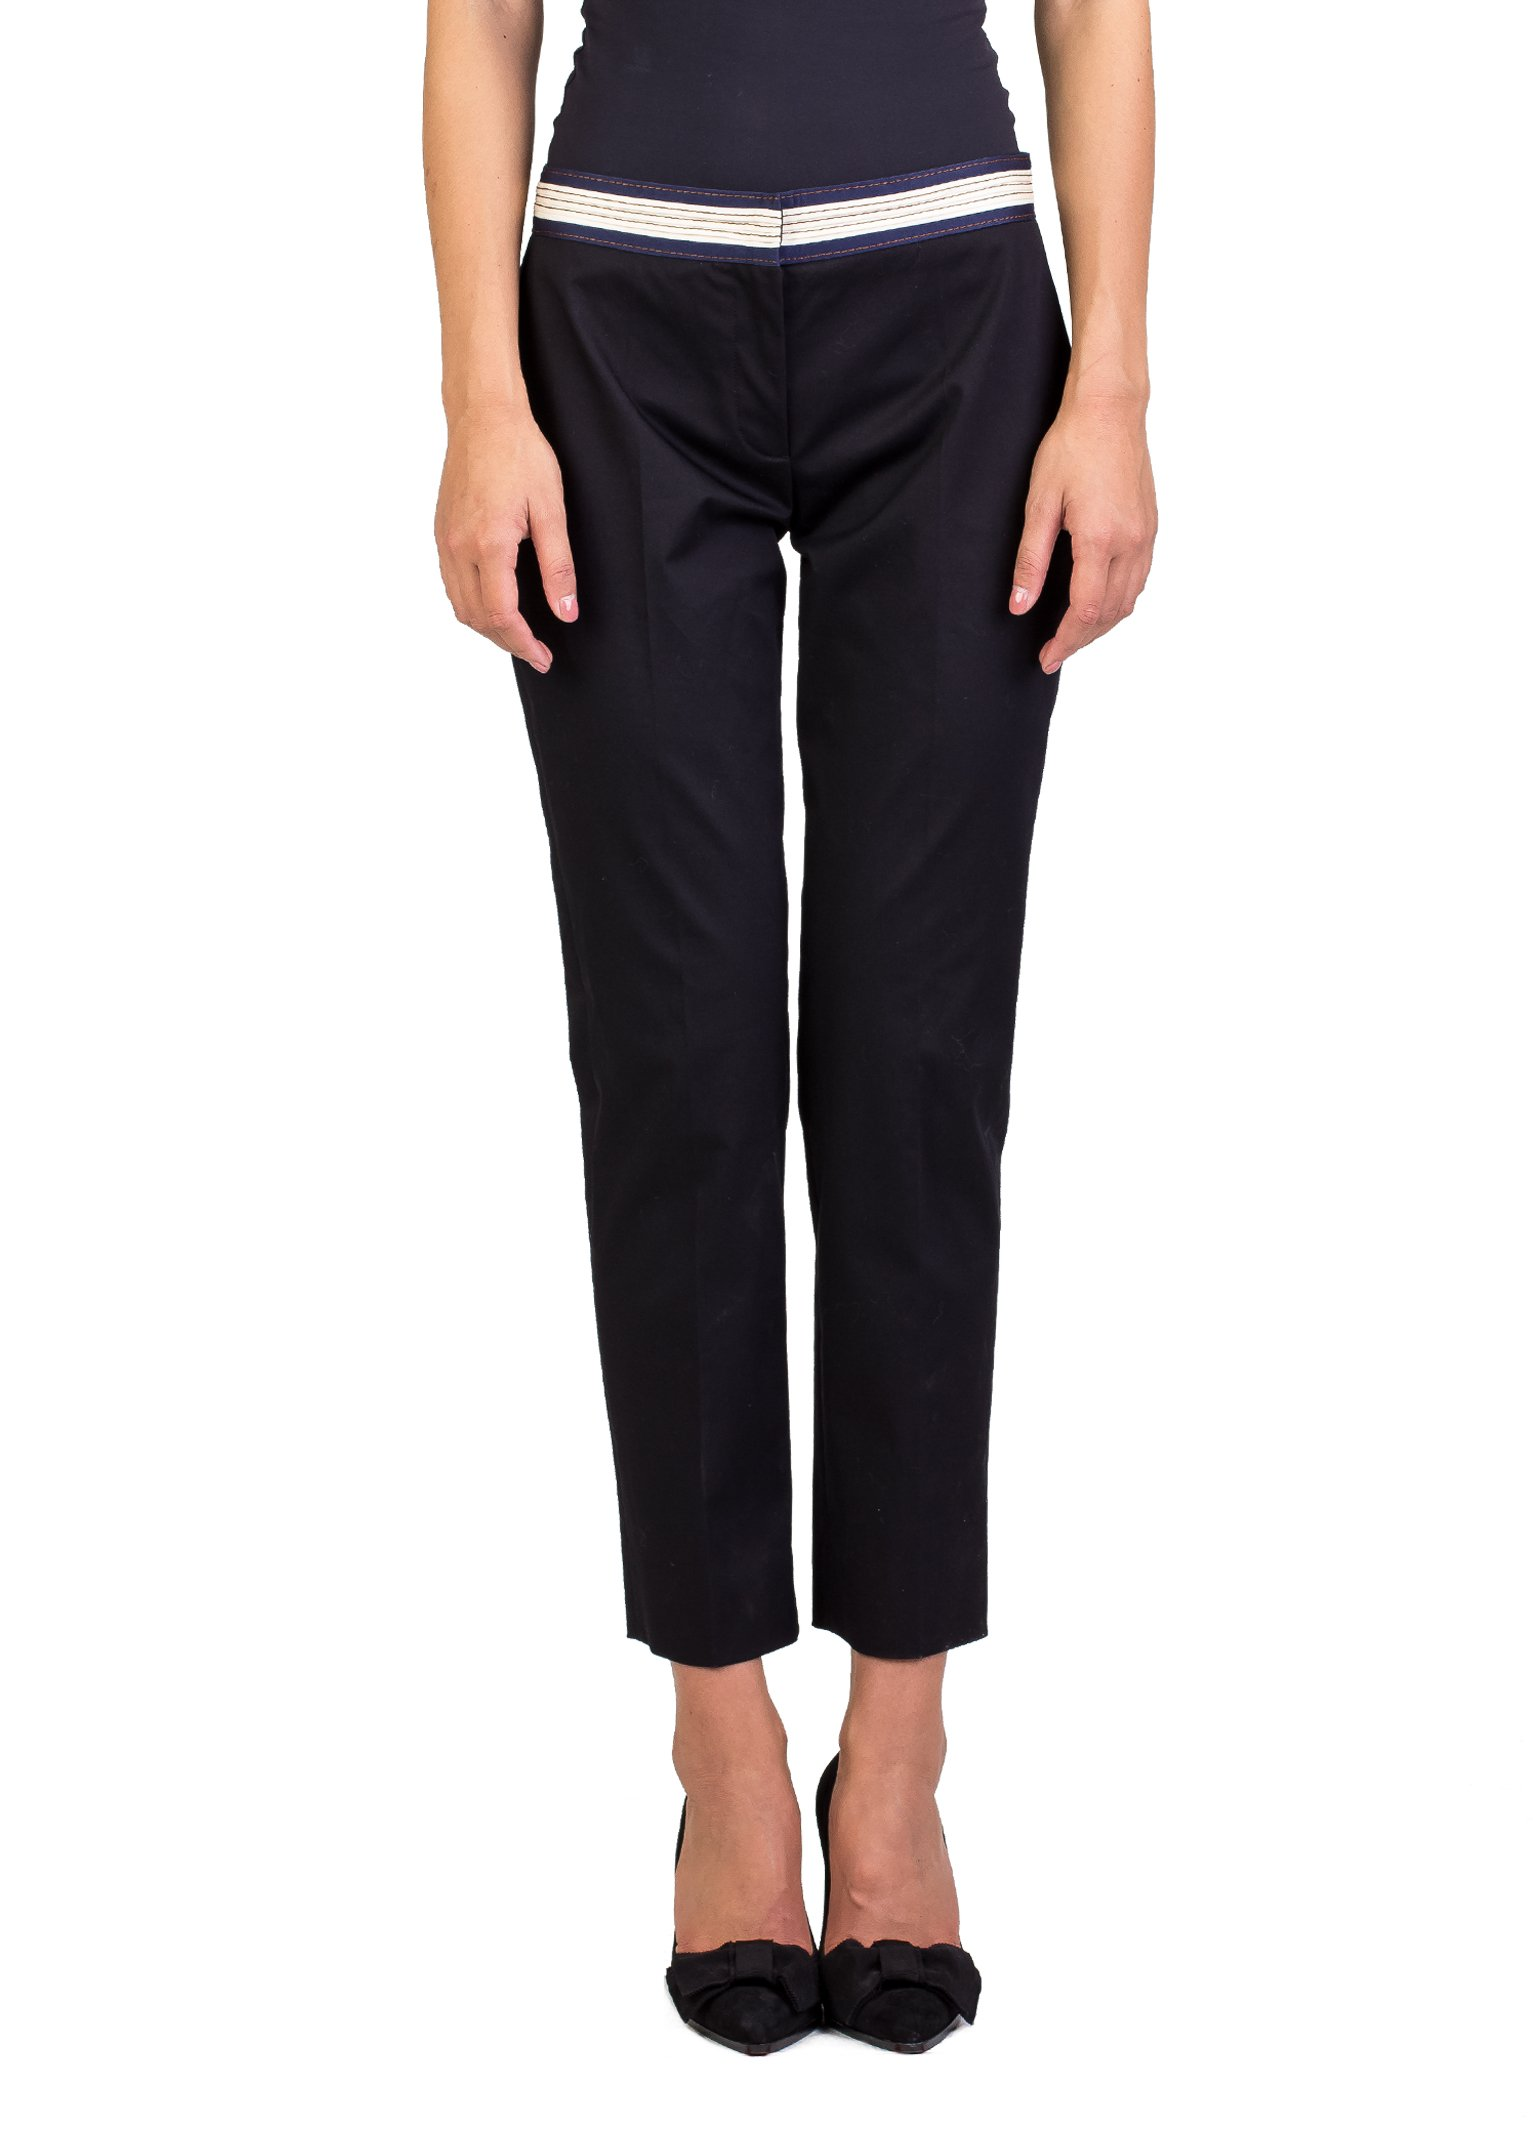 Prada Women's Cotton Chino Pants Black by Prada (Image #1)